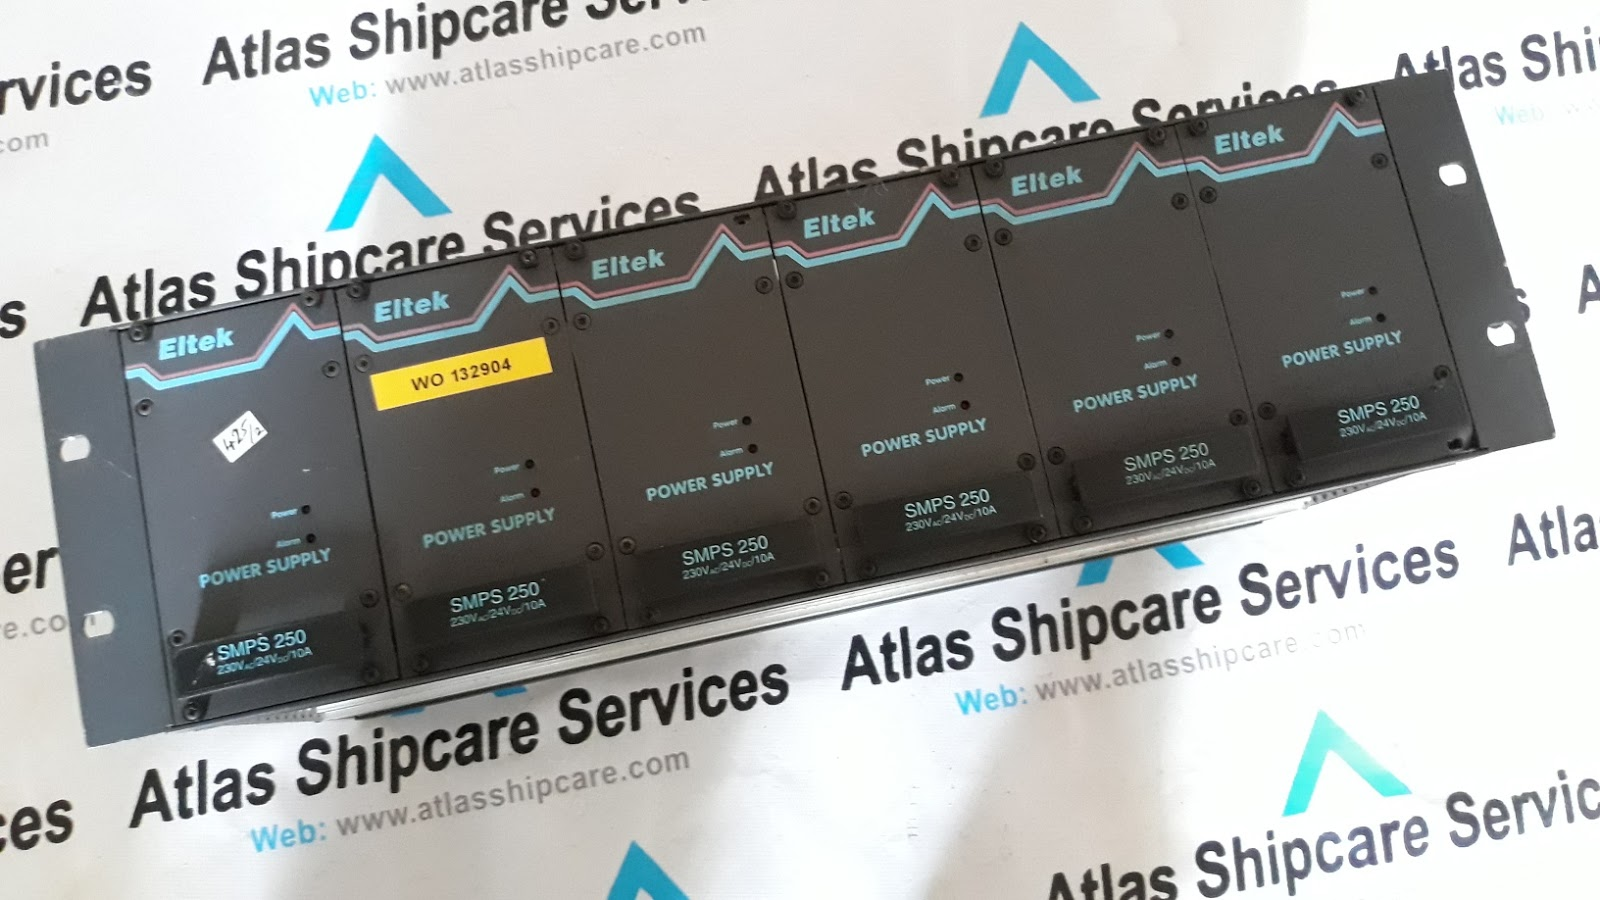 Eltek Power Supply Smps 250 Atlas Shipcare Services Stockiest Electrical Timer Relay India Type 230vac 24vdc 10a Condition 2 Pcs Used Rack Ref No 425